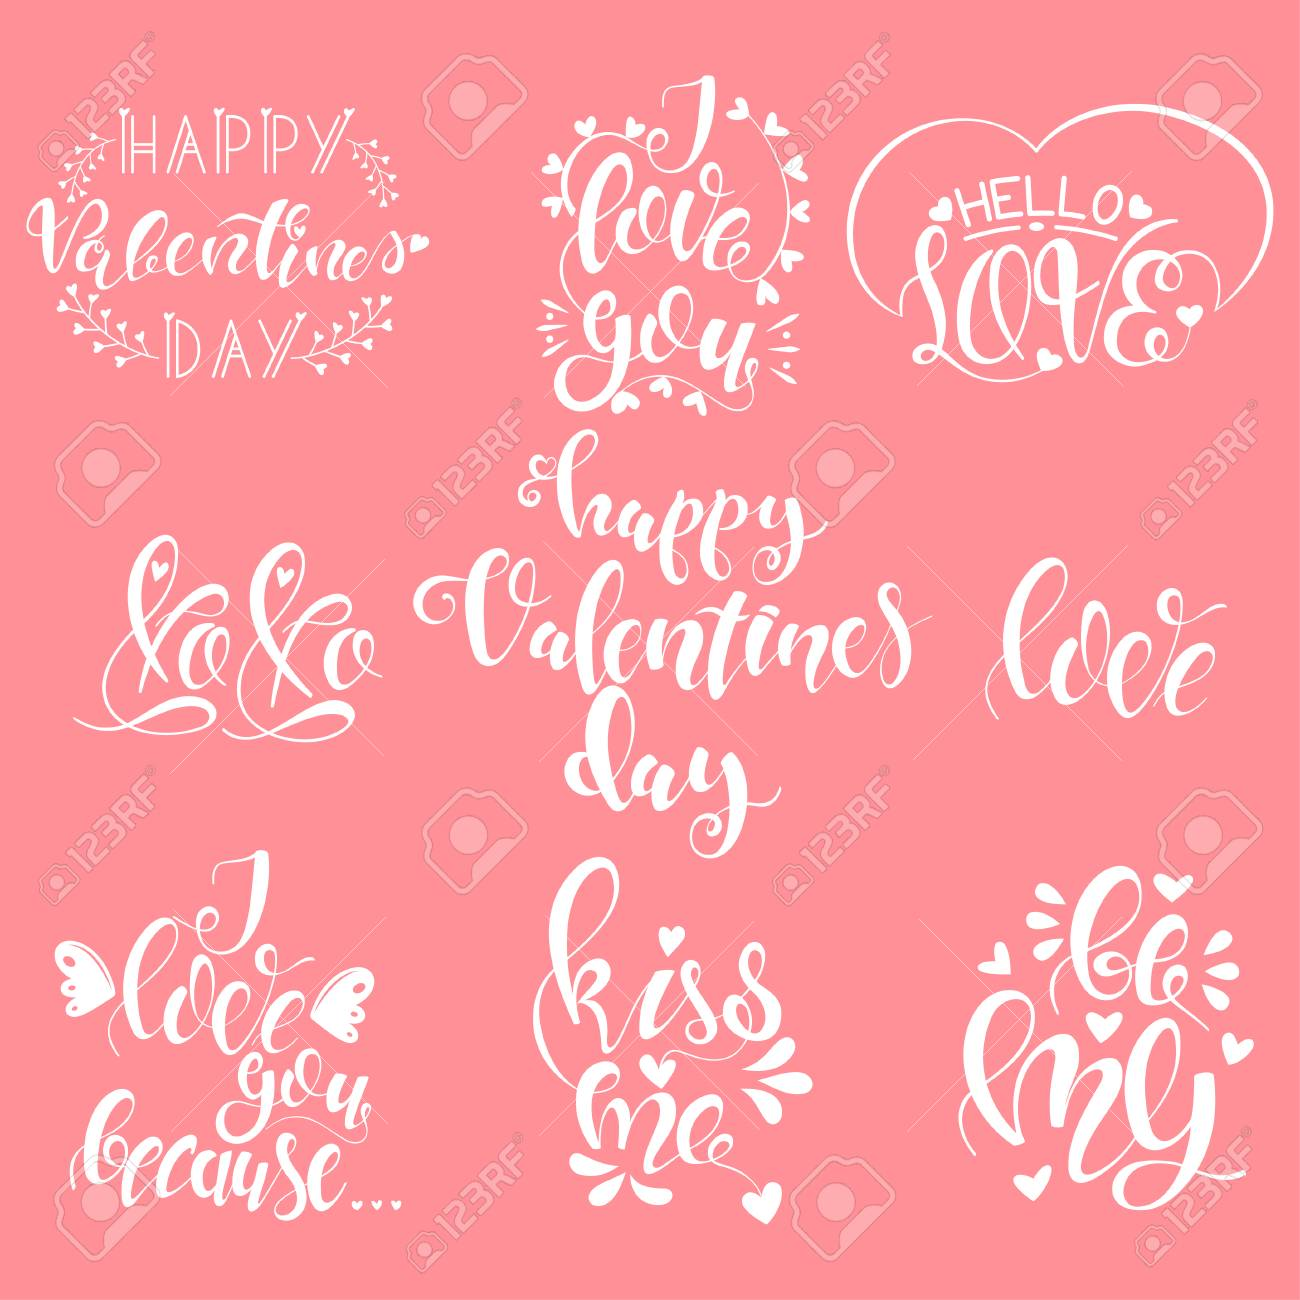 Happy Valentines Day Love Quotes Set Vector Handwritten Calligraphy